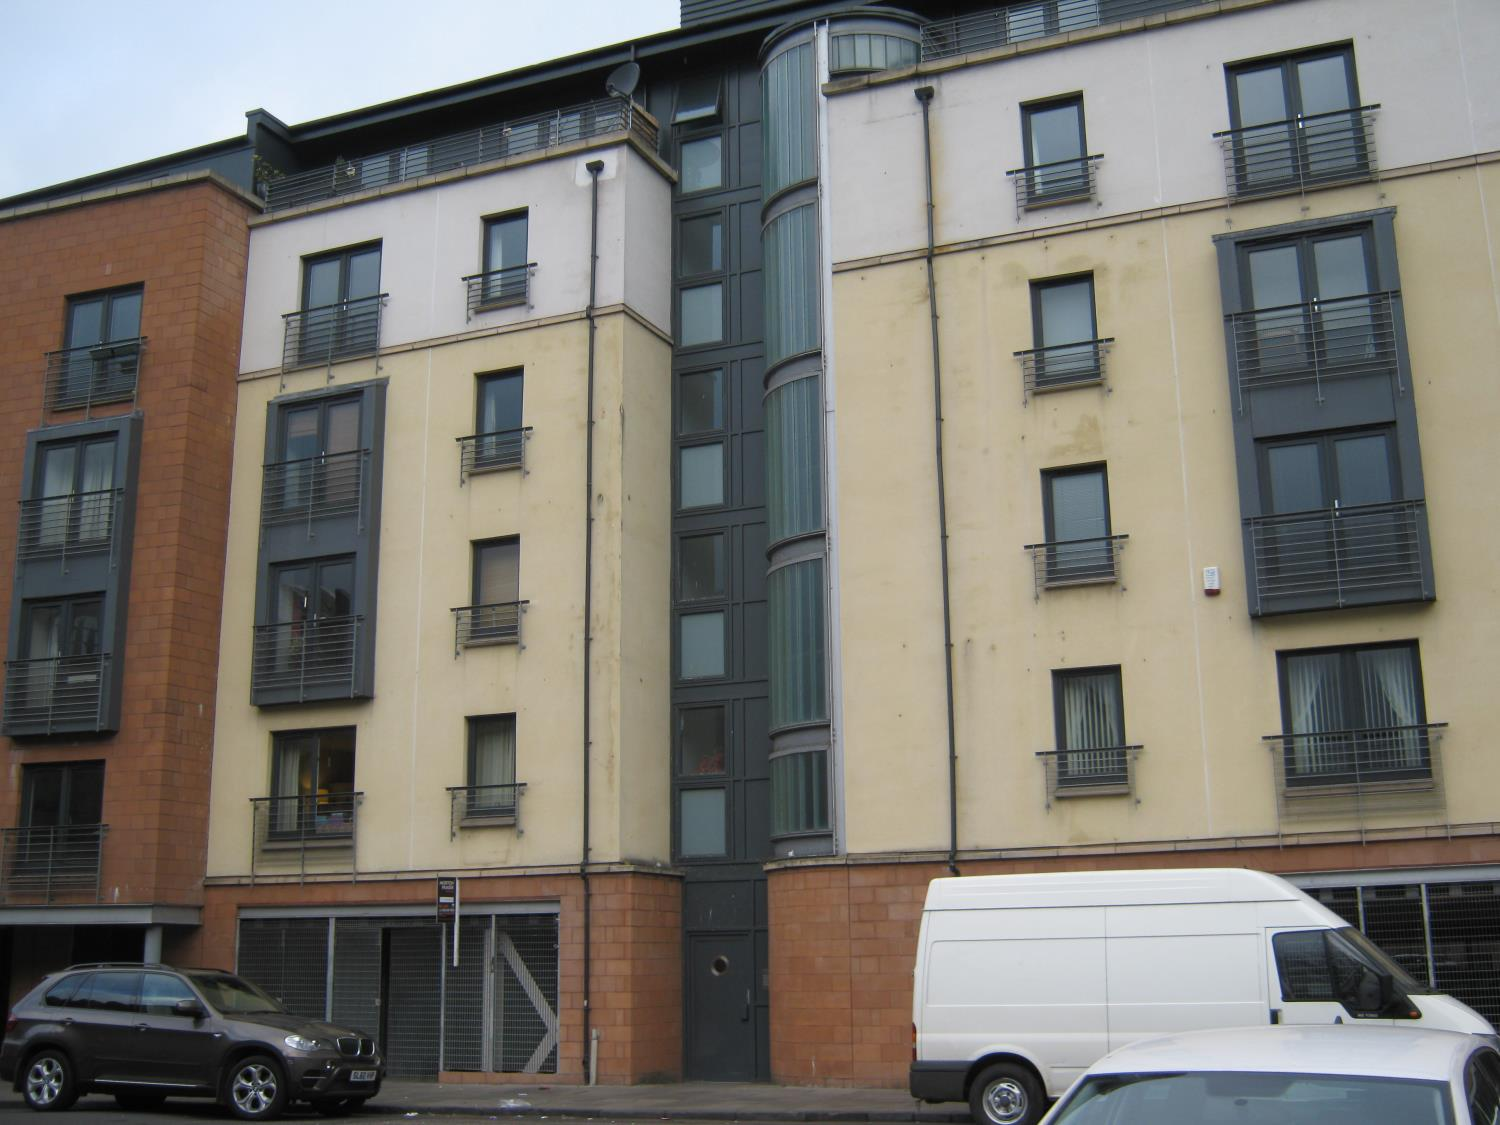 View property for rent Cables Wynd, Edinburgh